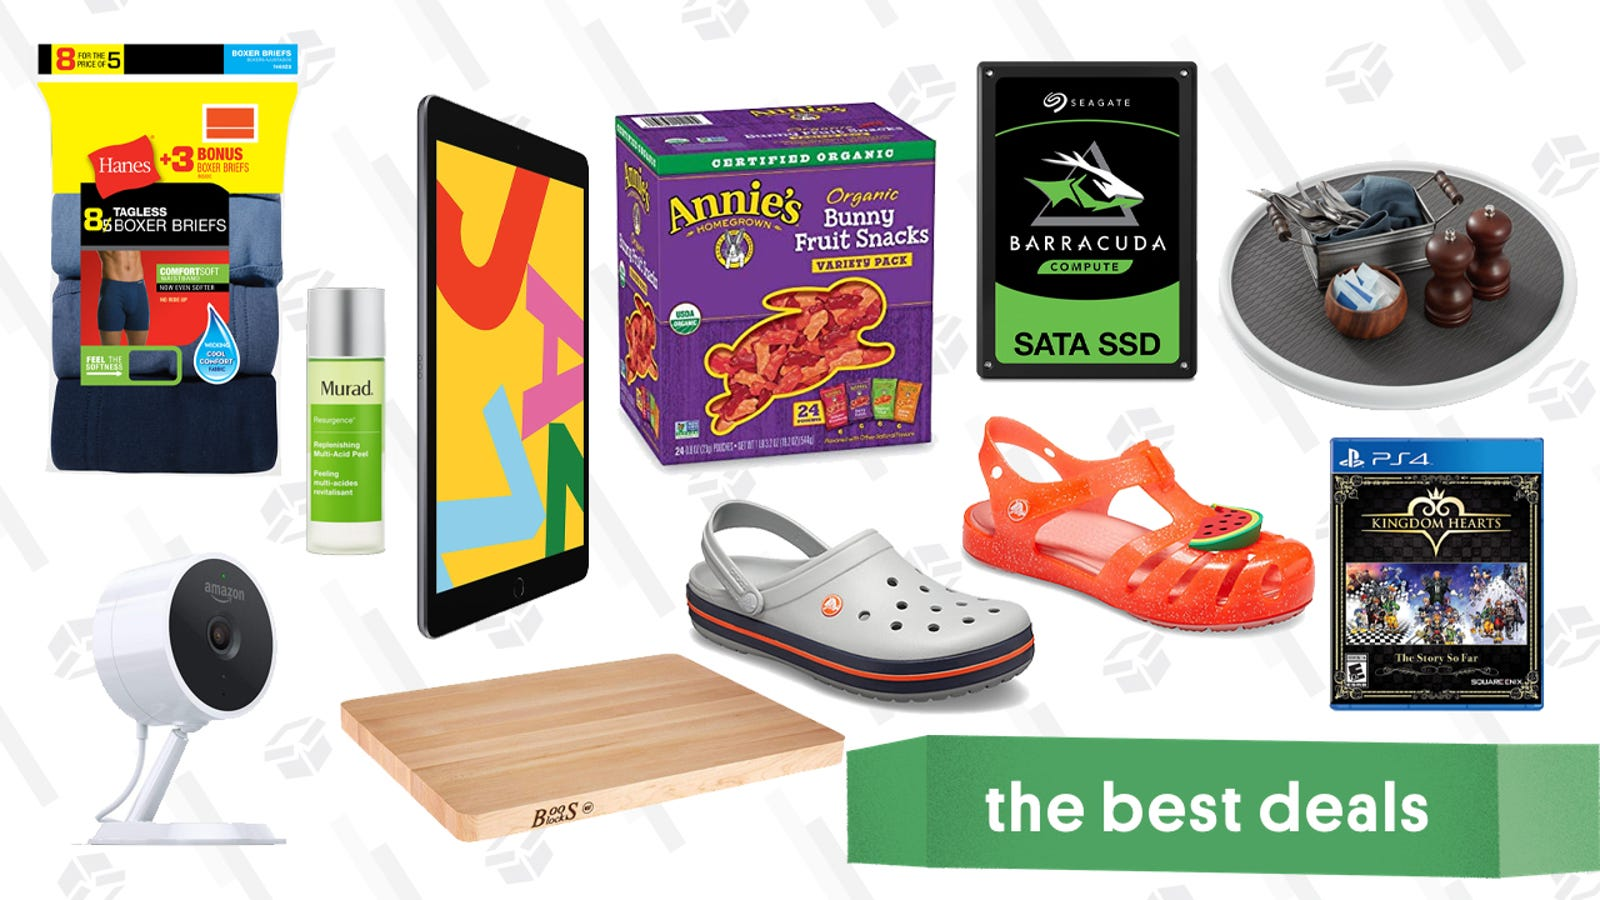 Friday's Best Deals: A Brand New iPad, Eddie Bauer, Annie's Fruit Snacks, Boos Block, and More